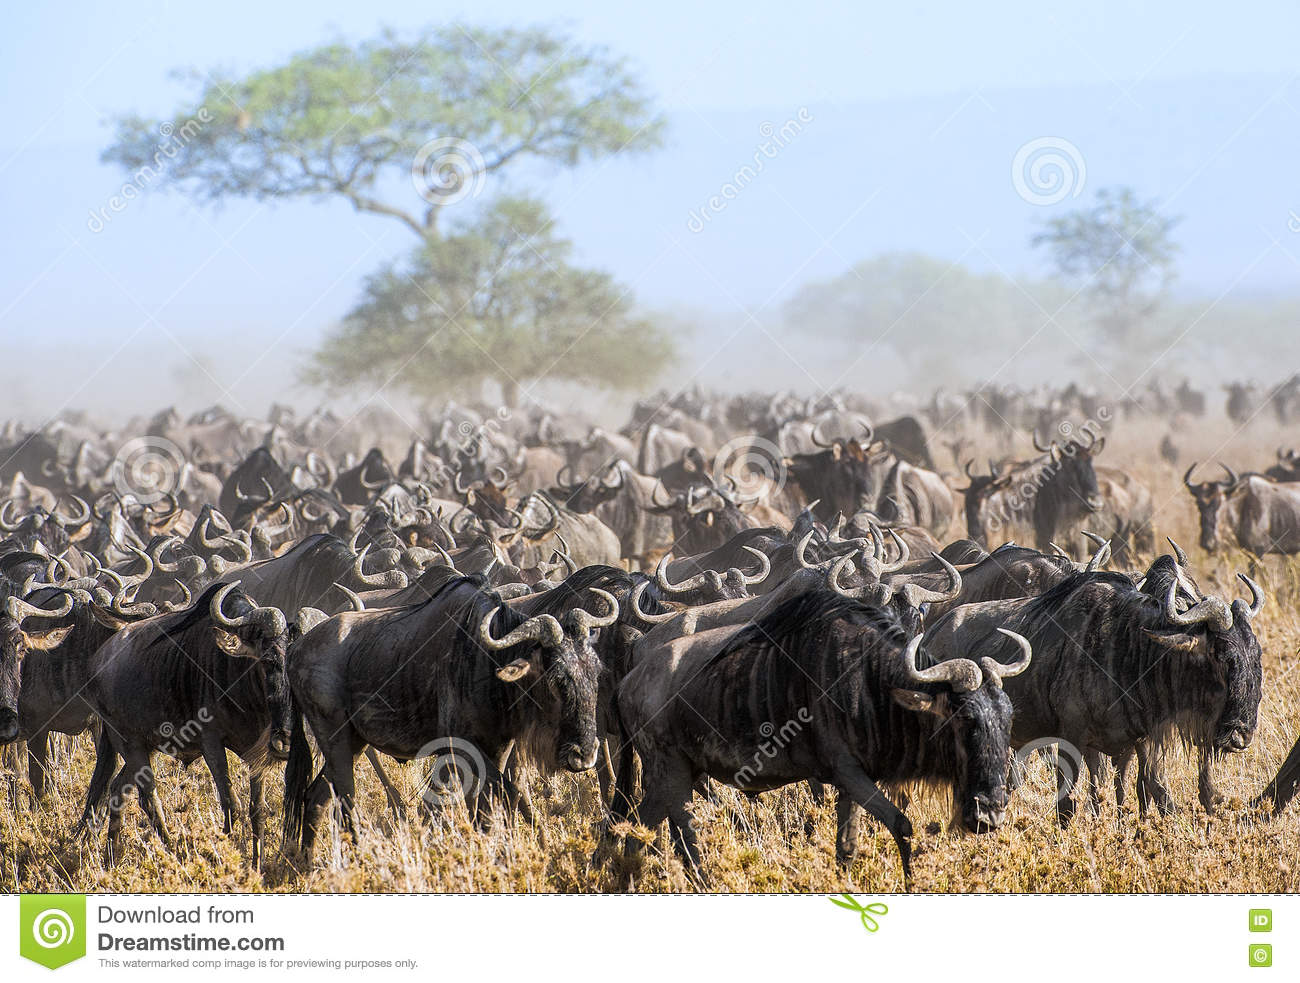 Wildebeest migration. The herd of migrating antelopes goes on dusty savanna. The wildebeests, also called gnus or wildebai, are a